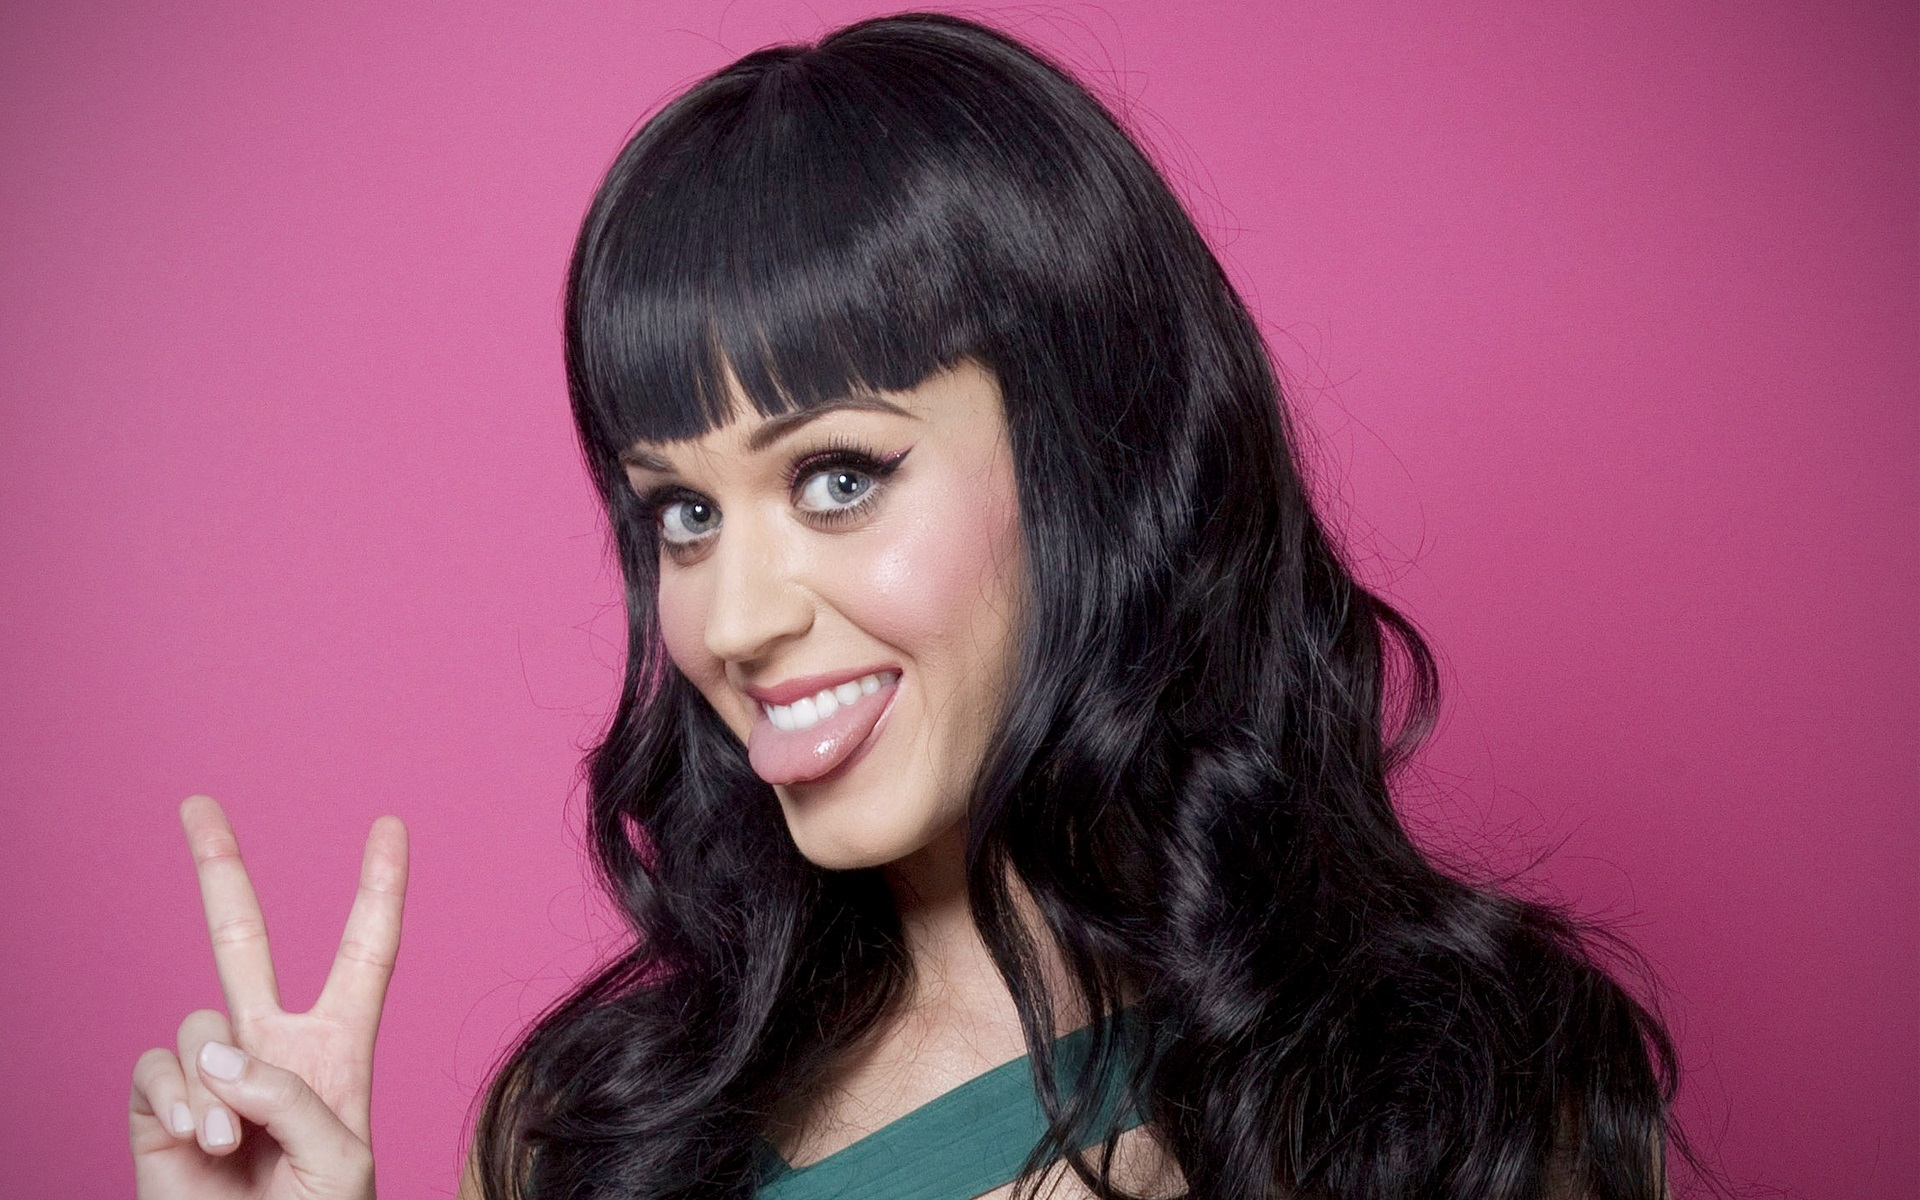 Katy Perry Wallpaper 48